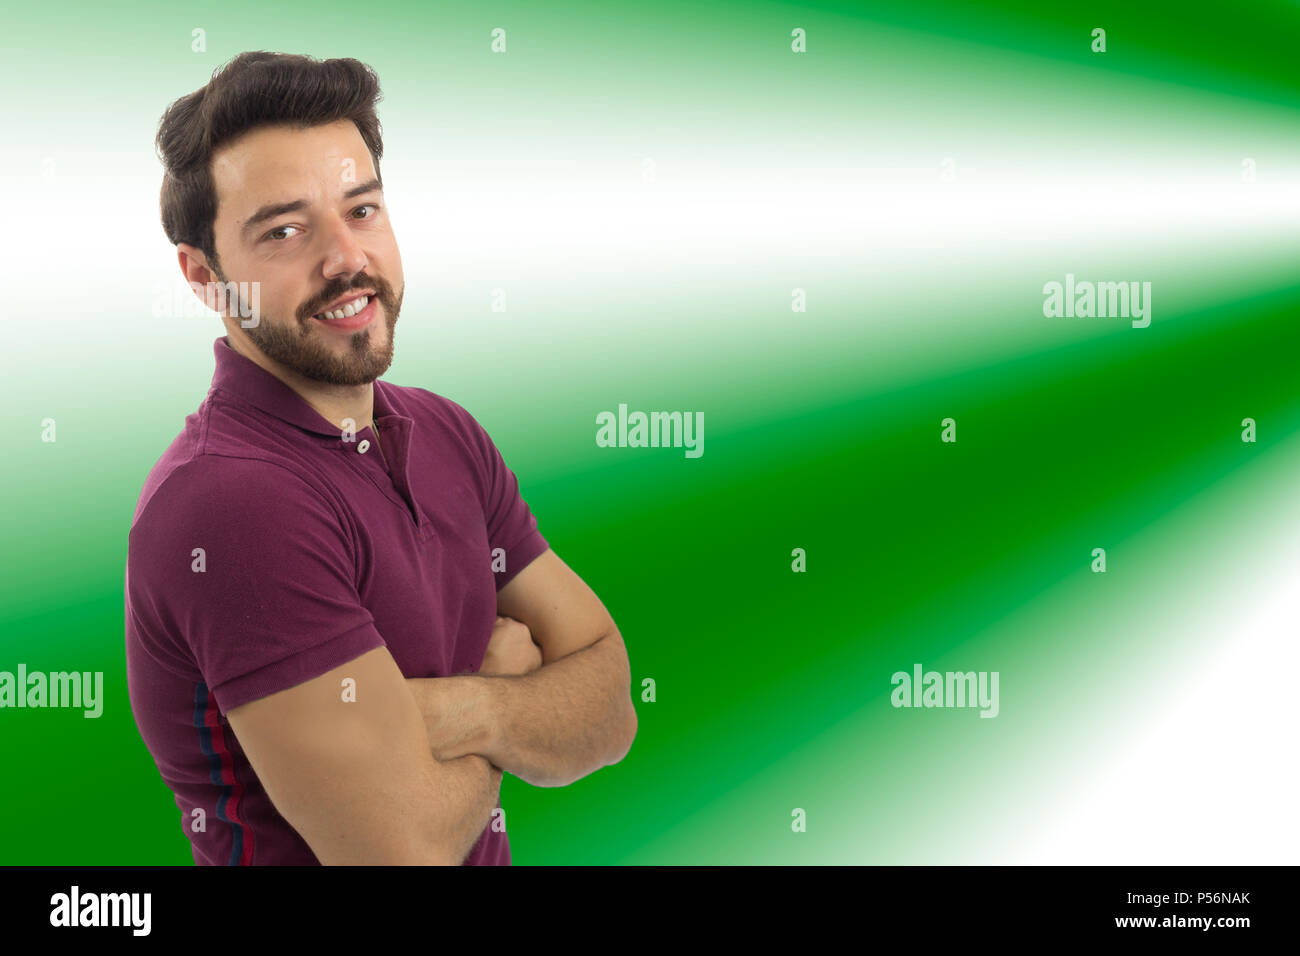 Friendly and confident man. Concept of confidence and security. Beautiful and bearded person. He is wearing a magenta polo shirt. White background, is - Stock Image